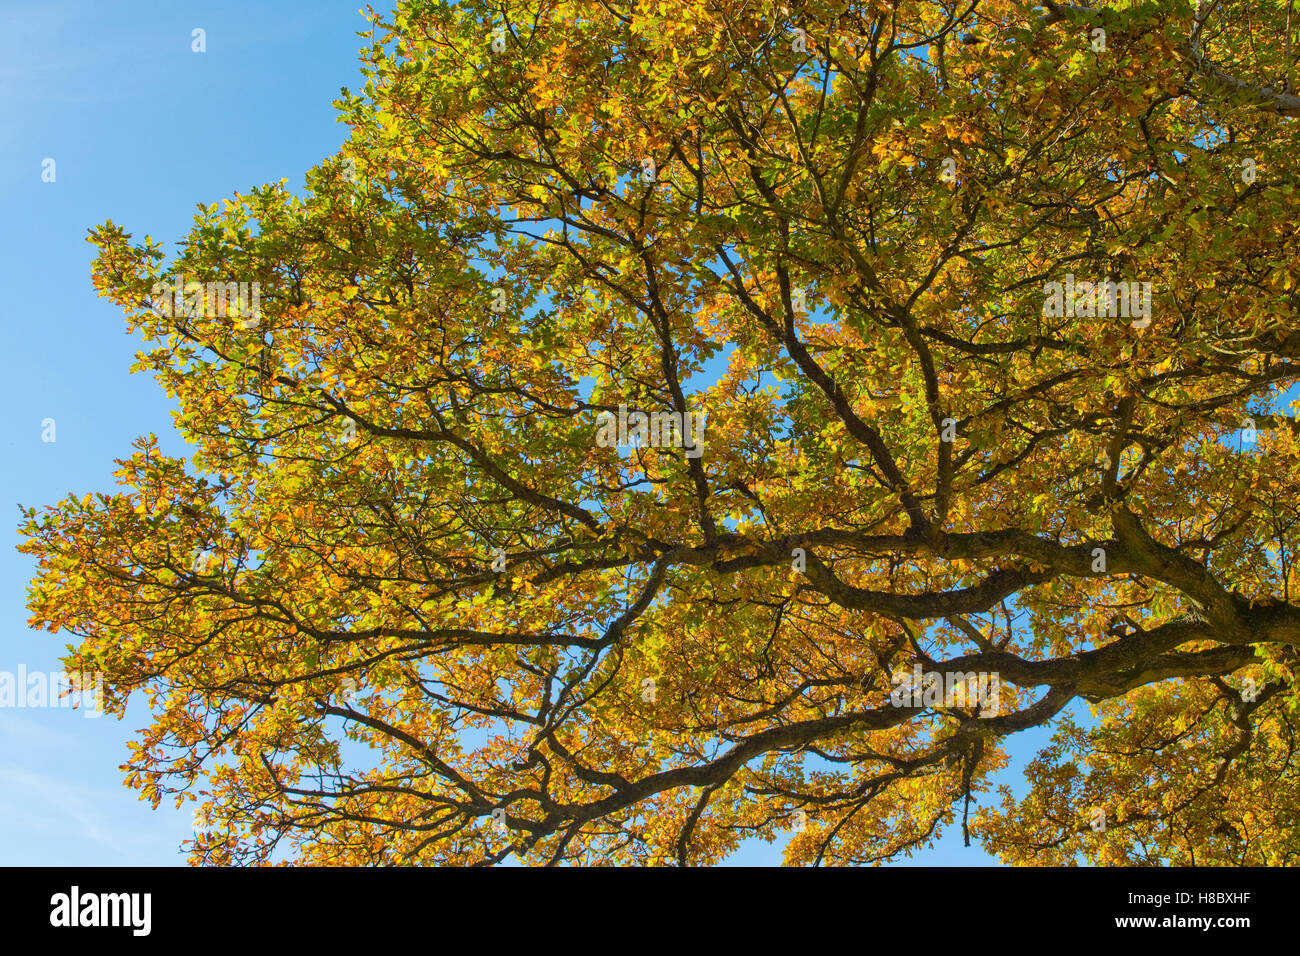 Green and gold leaves of an English oak tree against a blue sky in autumn, October - Stock Image